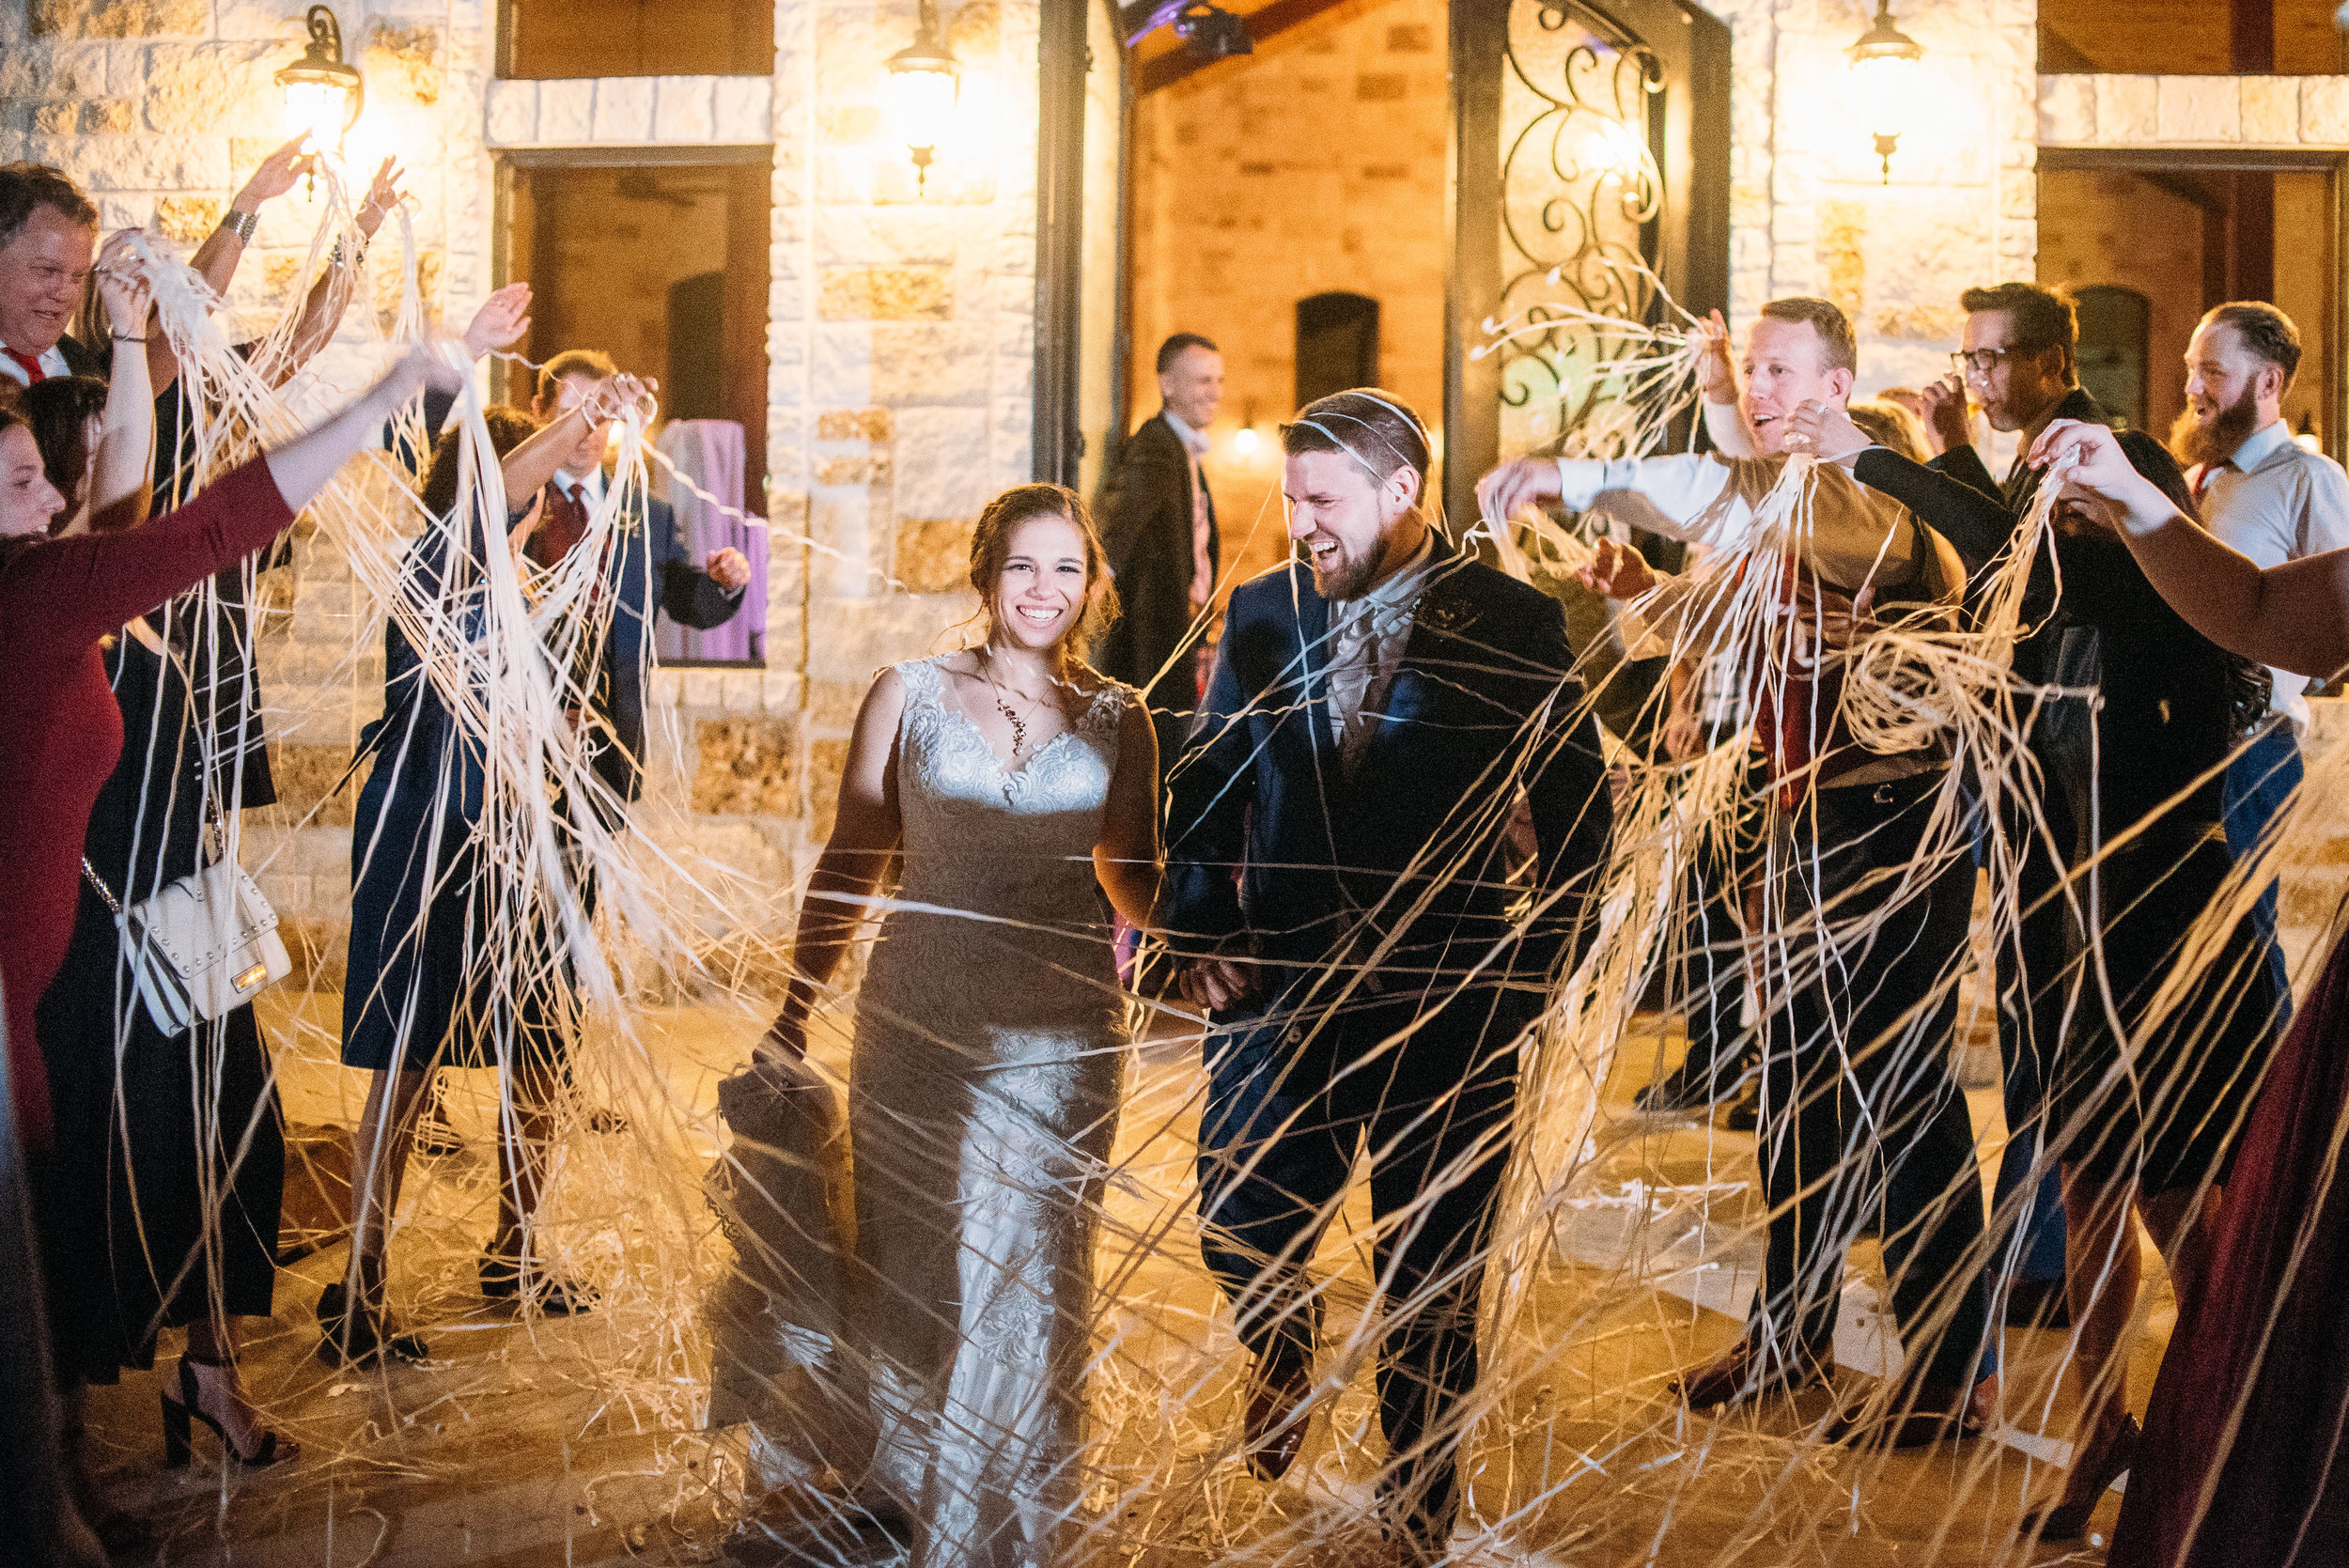 BrownstoneReserve_CollegeStation_WeddingPhotographer_66.jpg